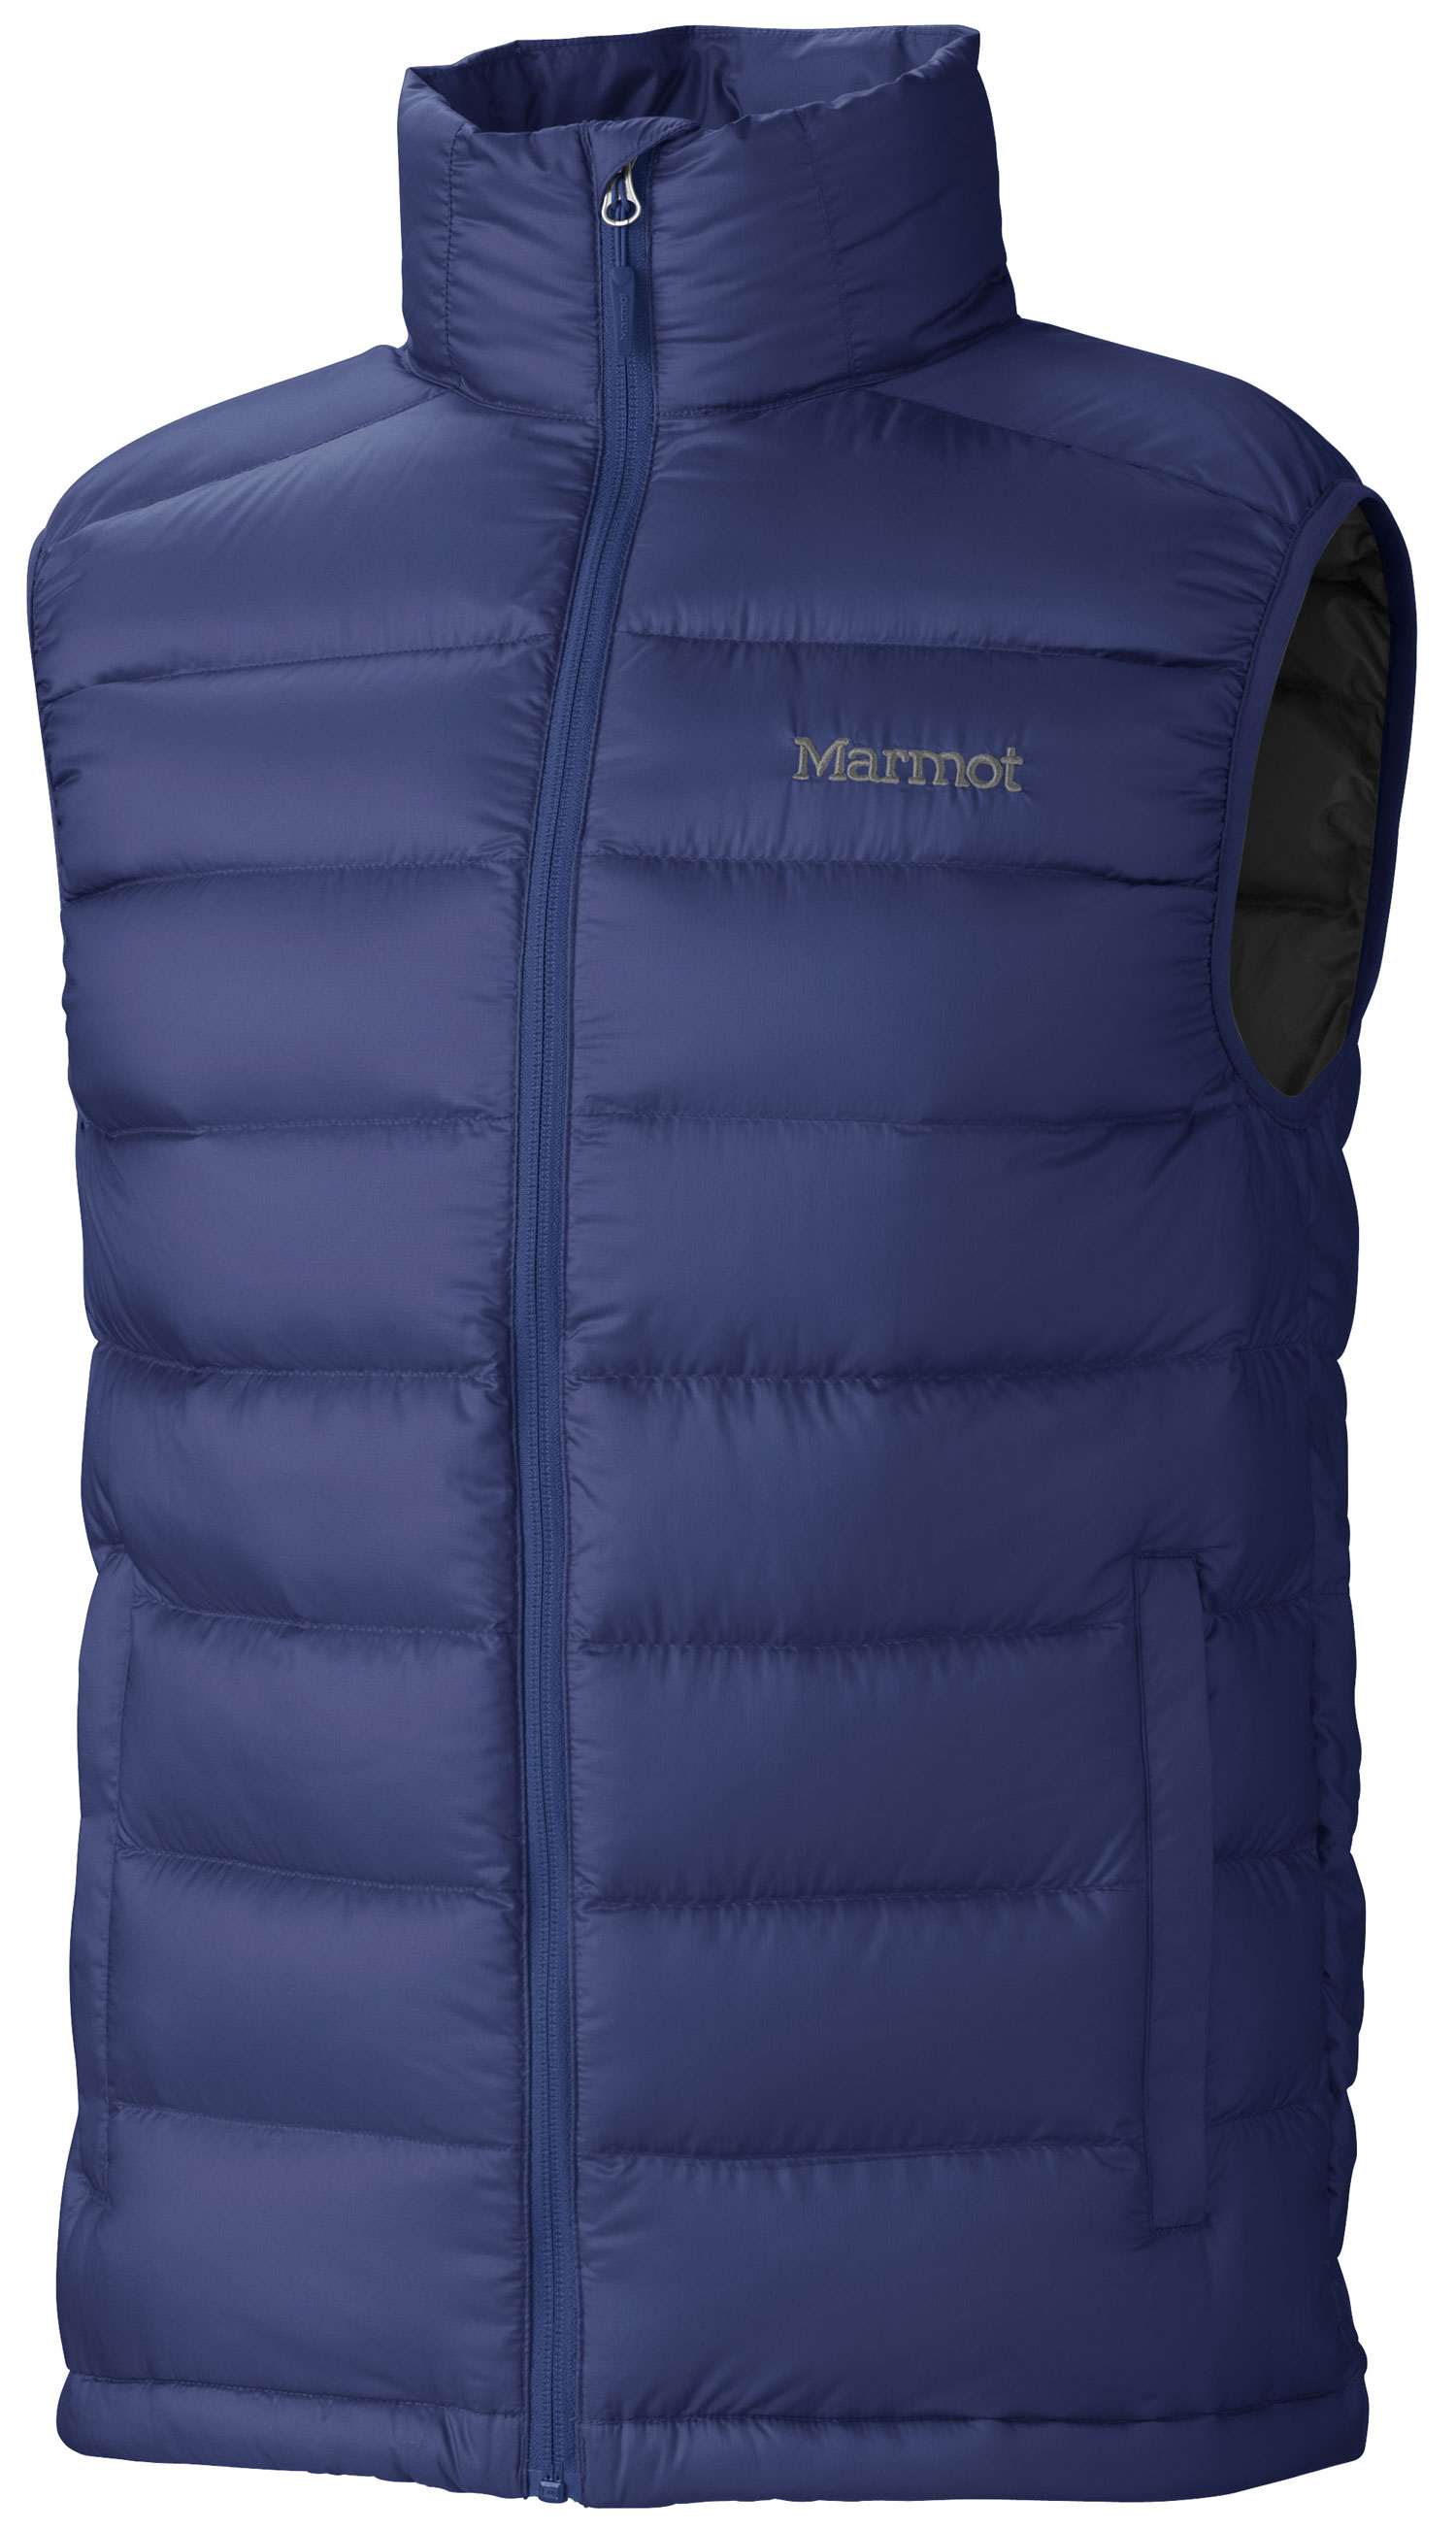 Guns and Military When the thermometer plunges, reach for this ultra light vest, packed with high-quality 800 fill power goose down. It's a great way to stock up on warmth without bulking up your pack, since it fits into its very own pocket! Features include an elastic draw cord hem and cozy hand warmer pockets.Key Features of the Marmot Zeus Vest: Ultralight Down-proof Fabric 800 Fill Power Goose Down Zippered Hand Pockets Elastic Draw Cord Hem Packs into Pocket - $150.00